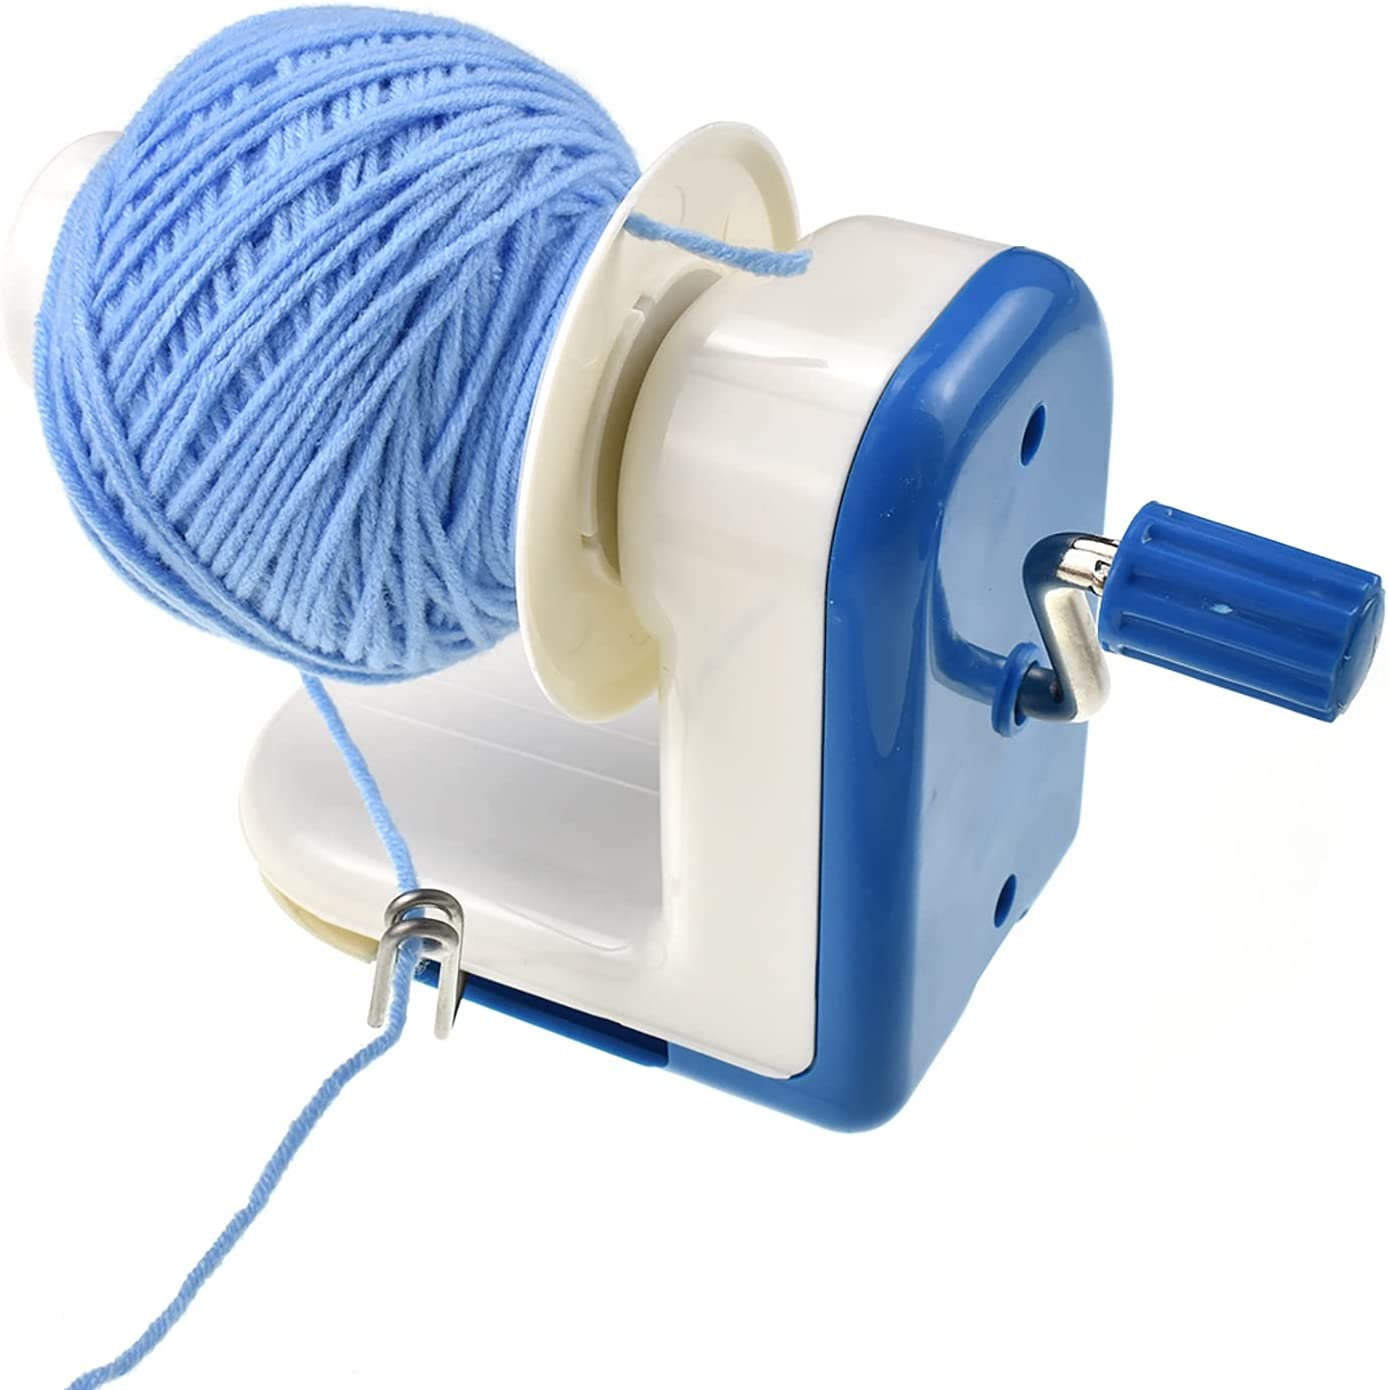 Looen Yarn Winder Ball Cakes String for Crochet Set Safety 2021new shipping free shipping and trust